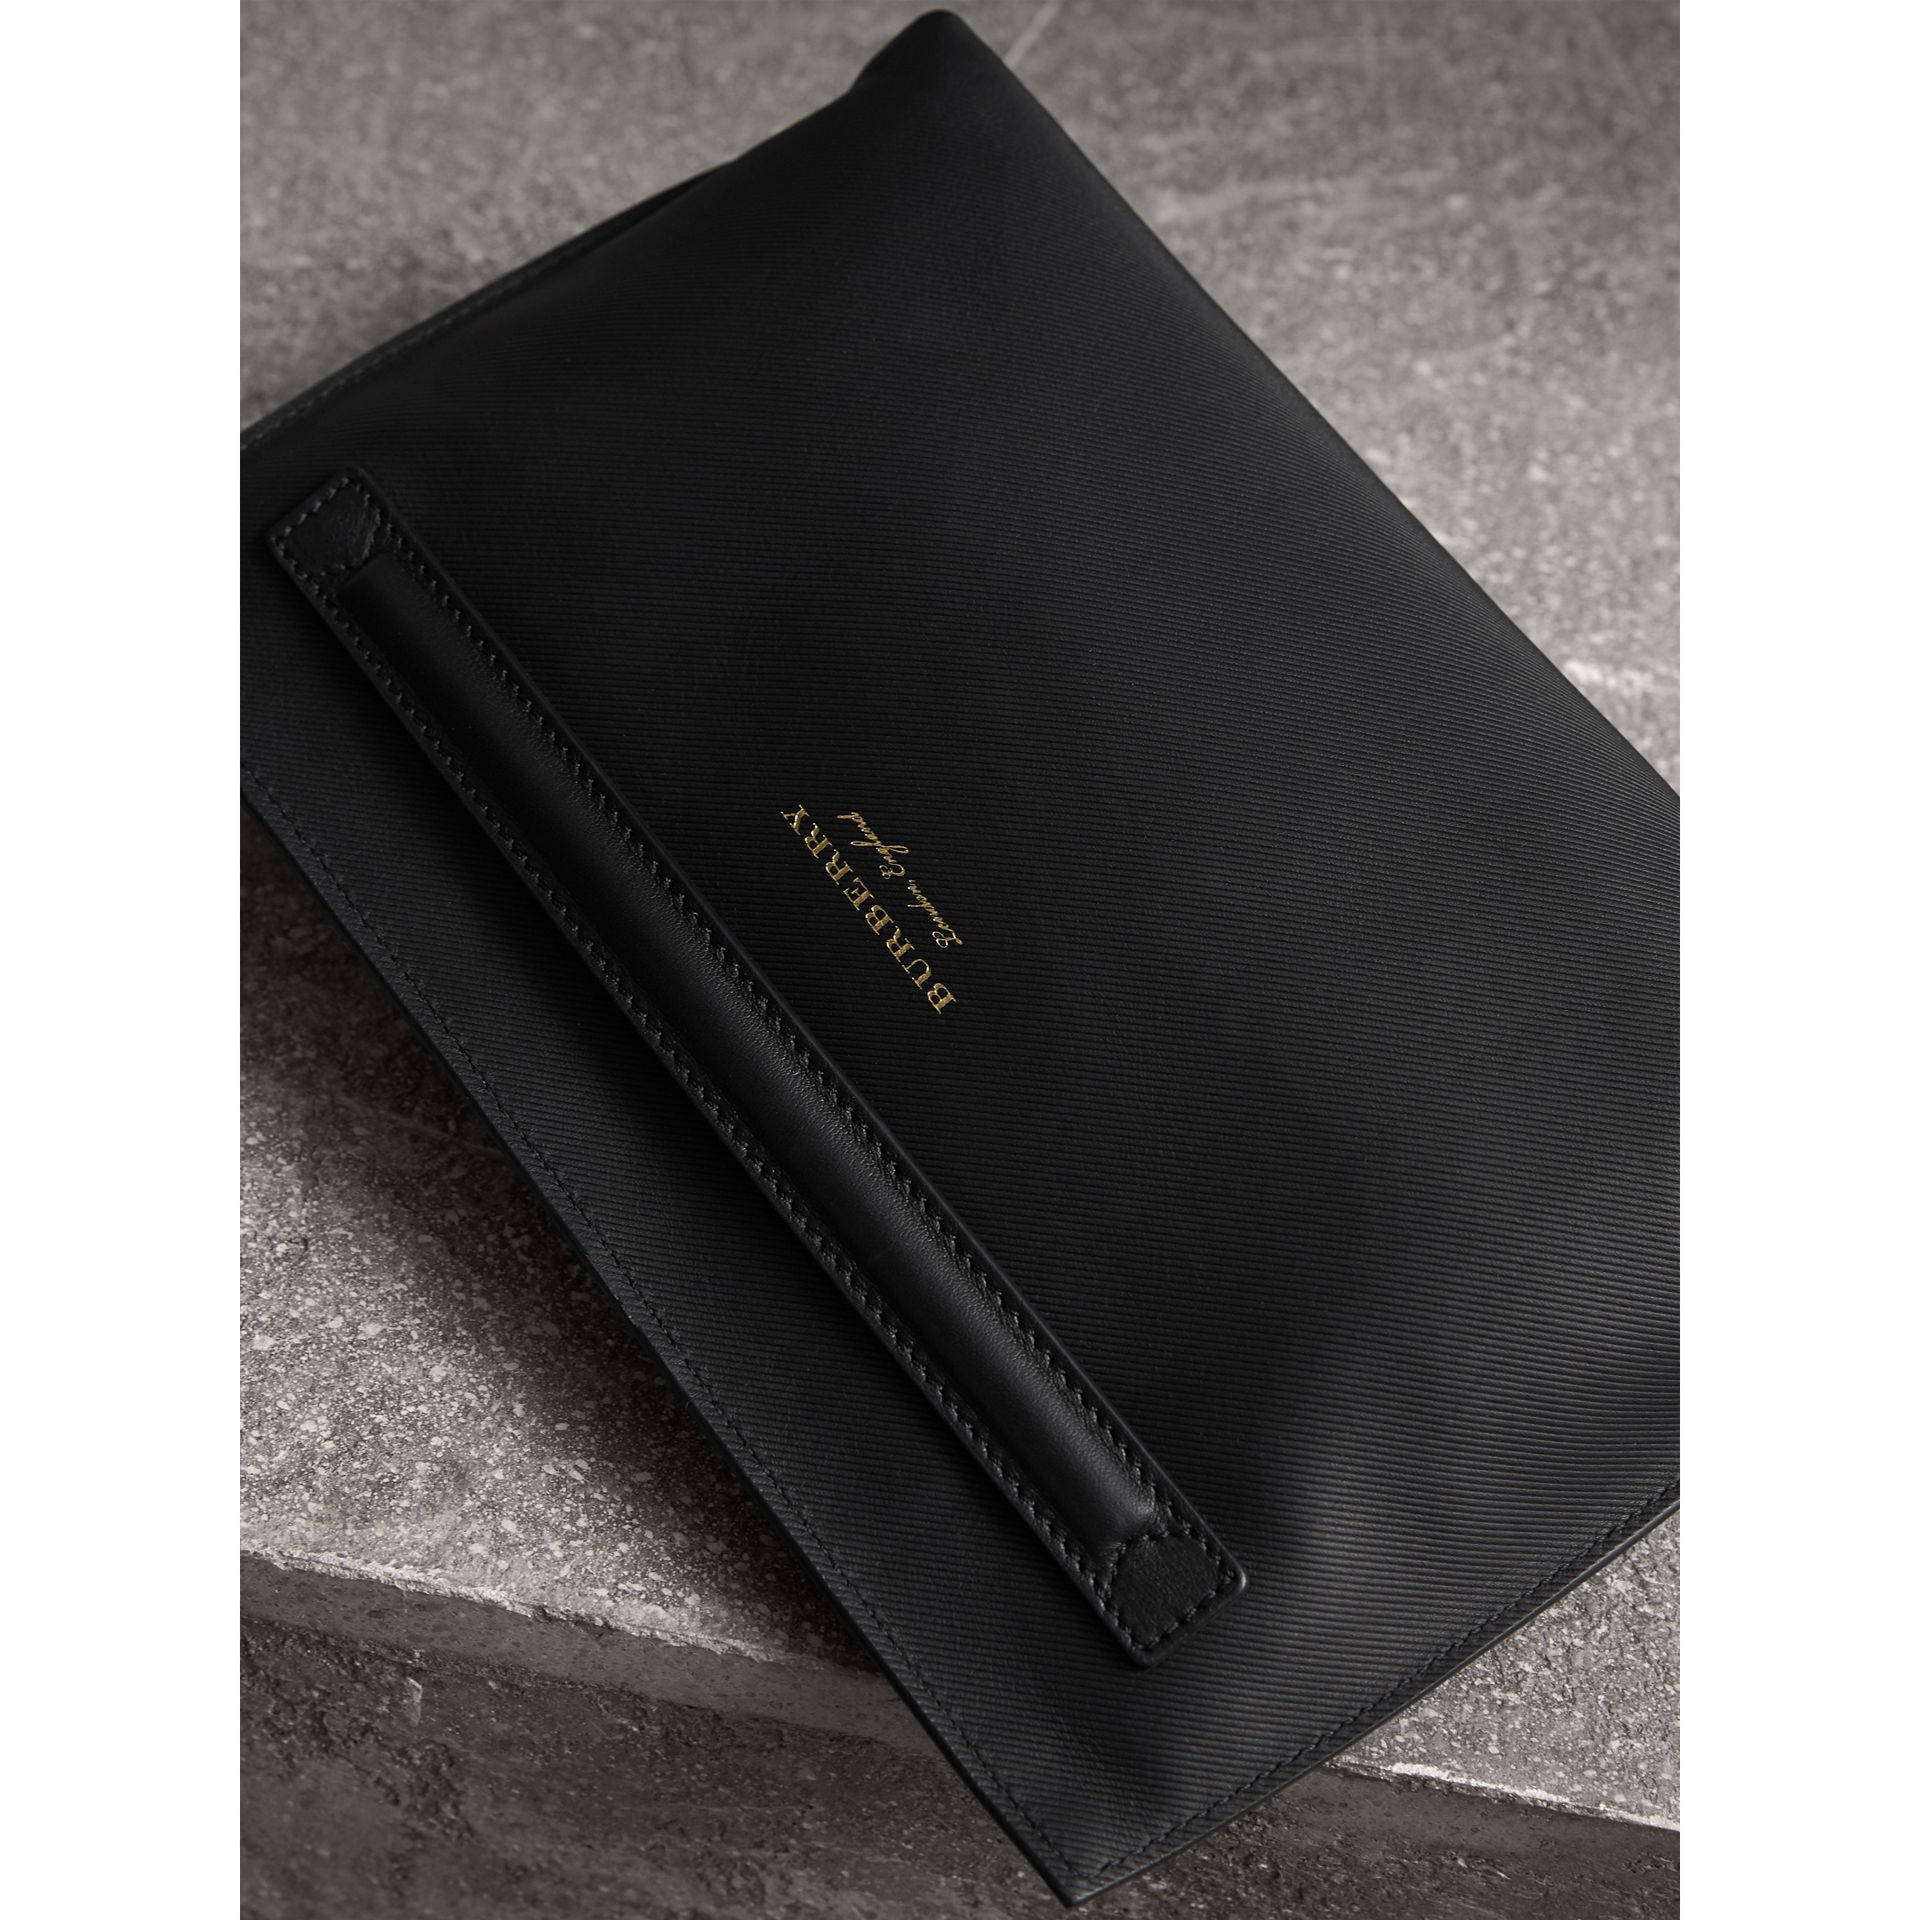 Trench Leather Wristlet Pouch in Black - Women | Burberry Australia - gallery image 4